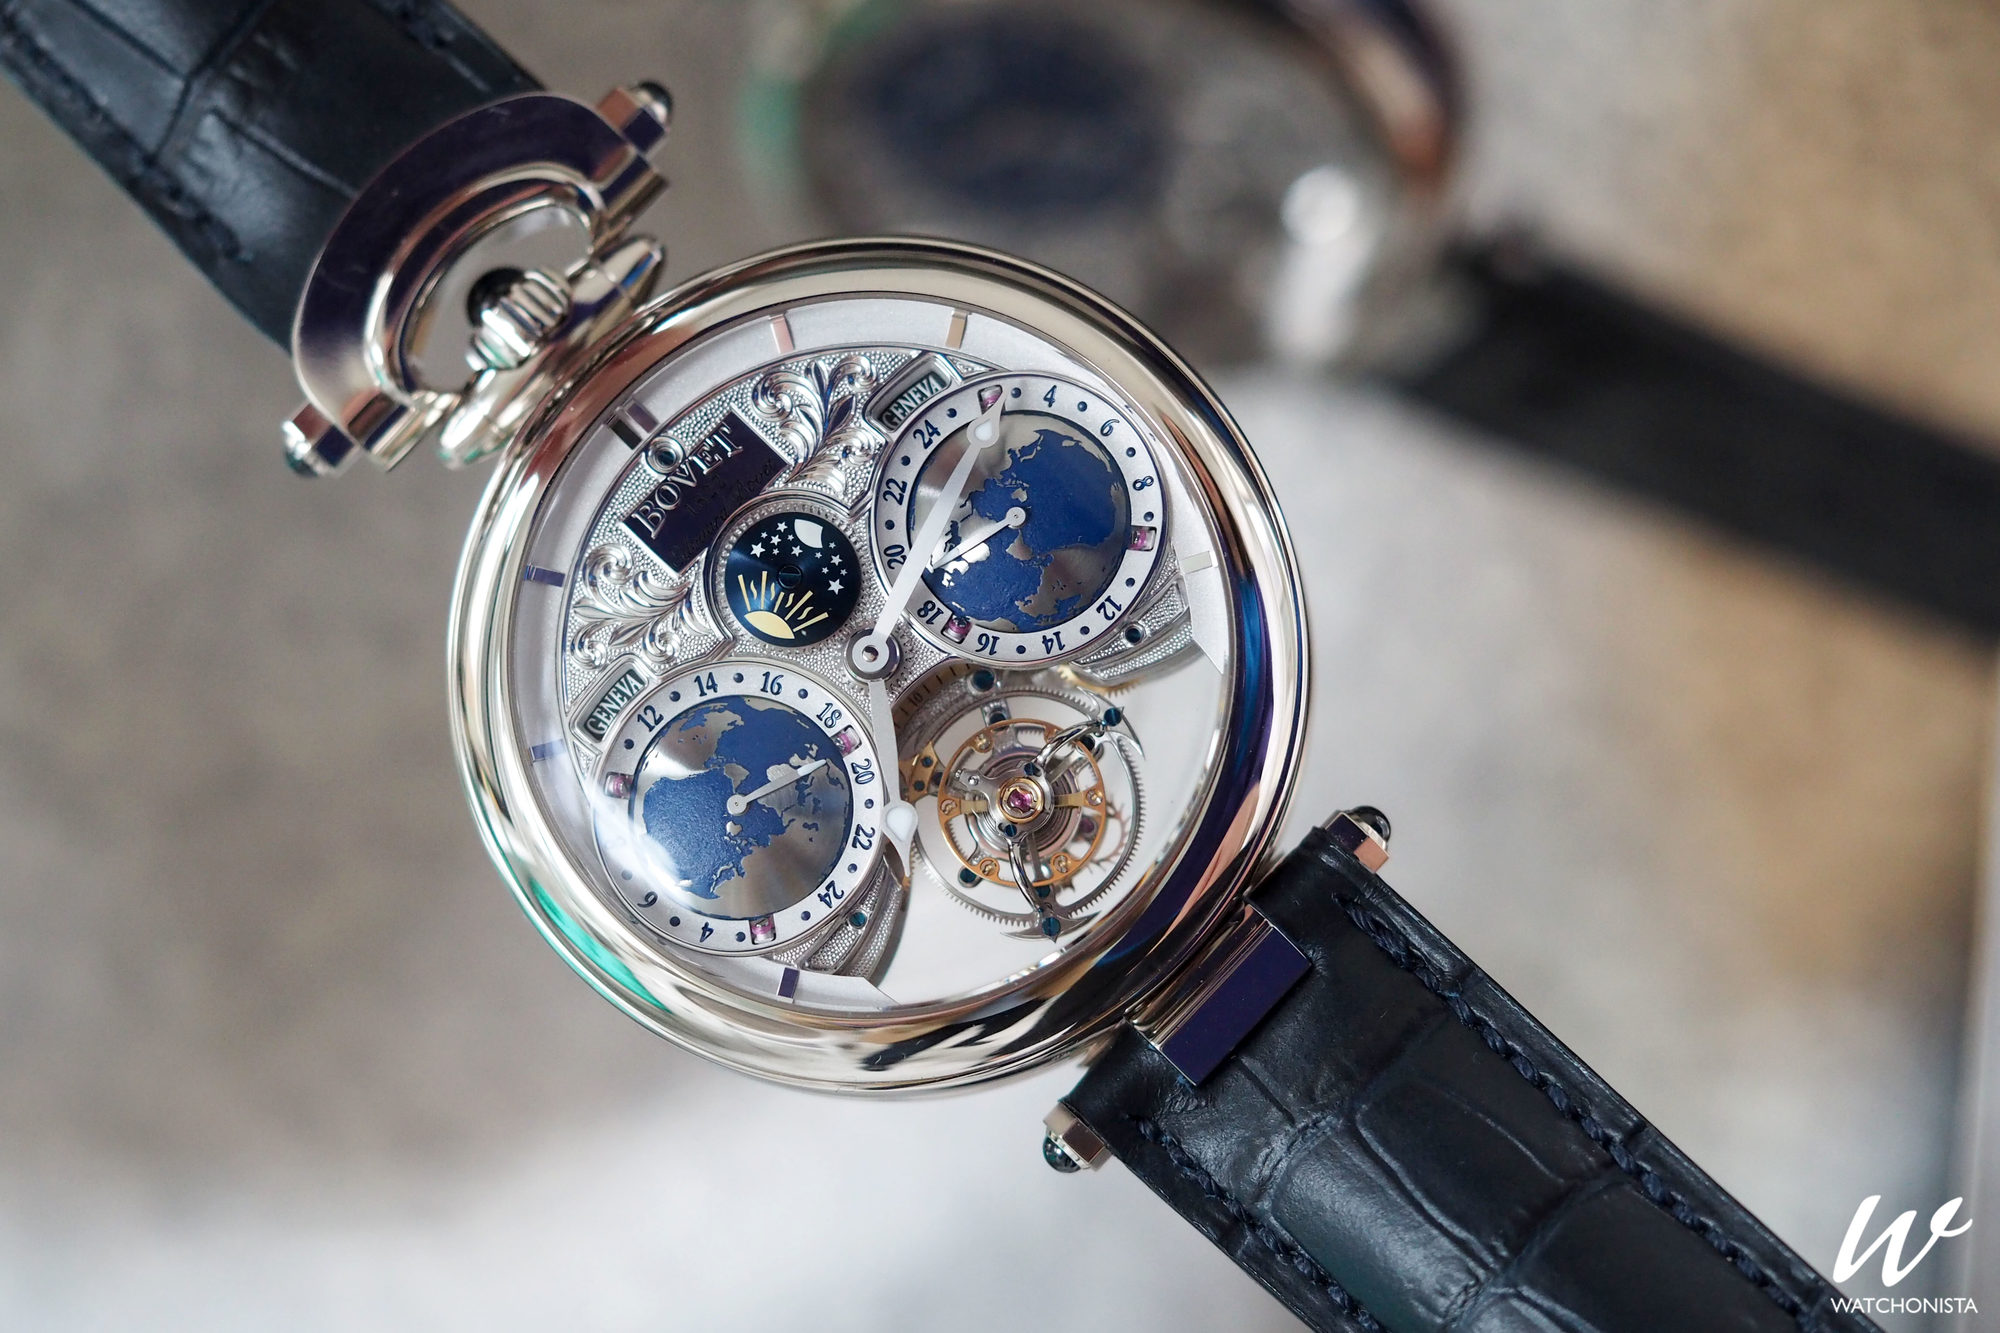 hour watches review watchtime square v s tag jumping magazine no usa bovet front watch virtuoso